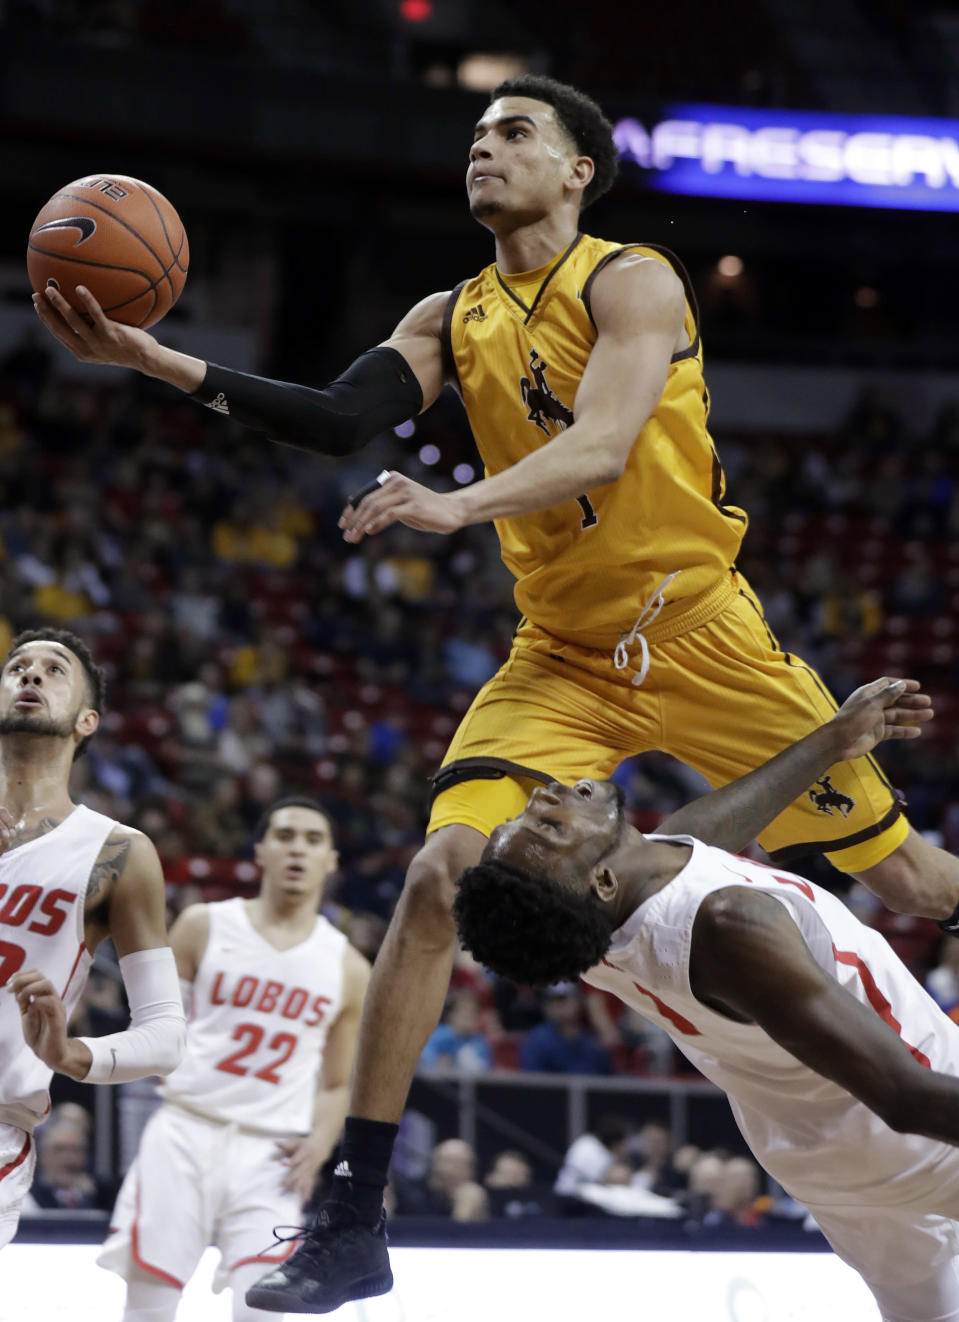 Wyoming's Justin James shoots over New Mexico's Jalen Harris during the first half of an NCAA college basketball game in the Mountain West Conference men's tournament Wednesday, March 13, 2019, in Las Vegas. (AP Photo/Isaac Brekken)